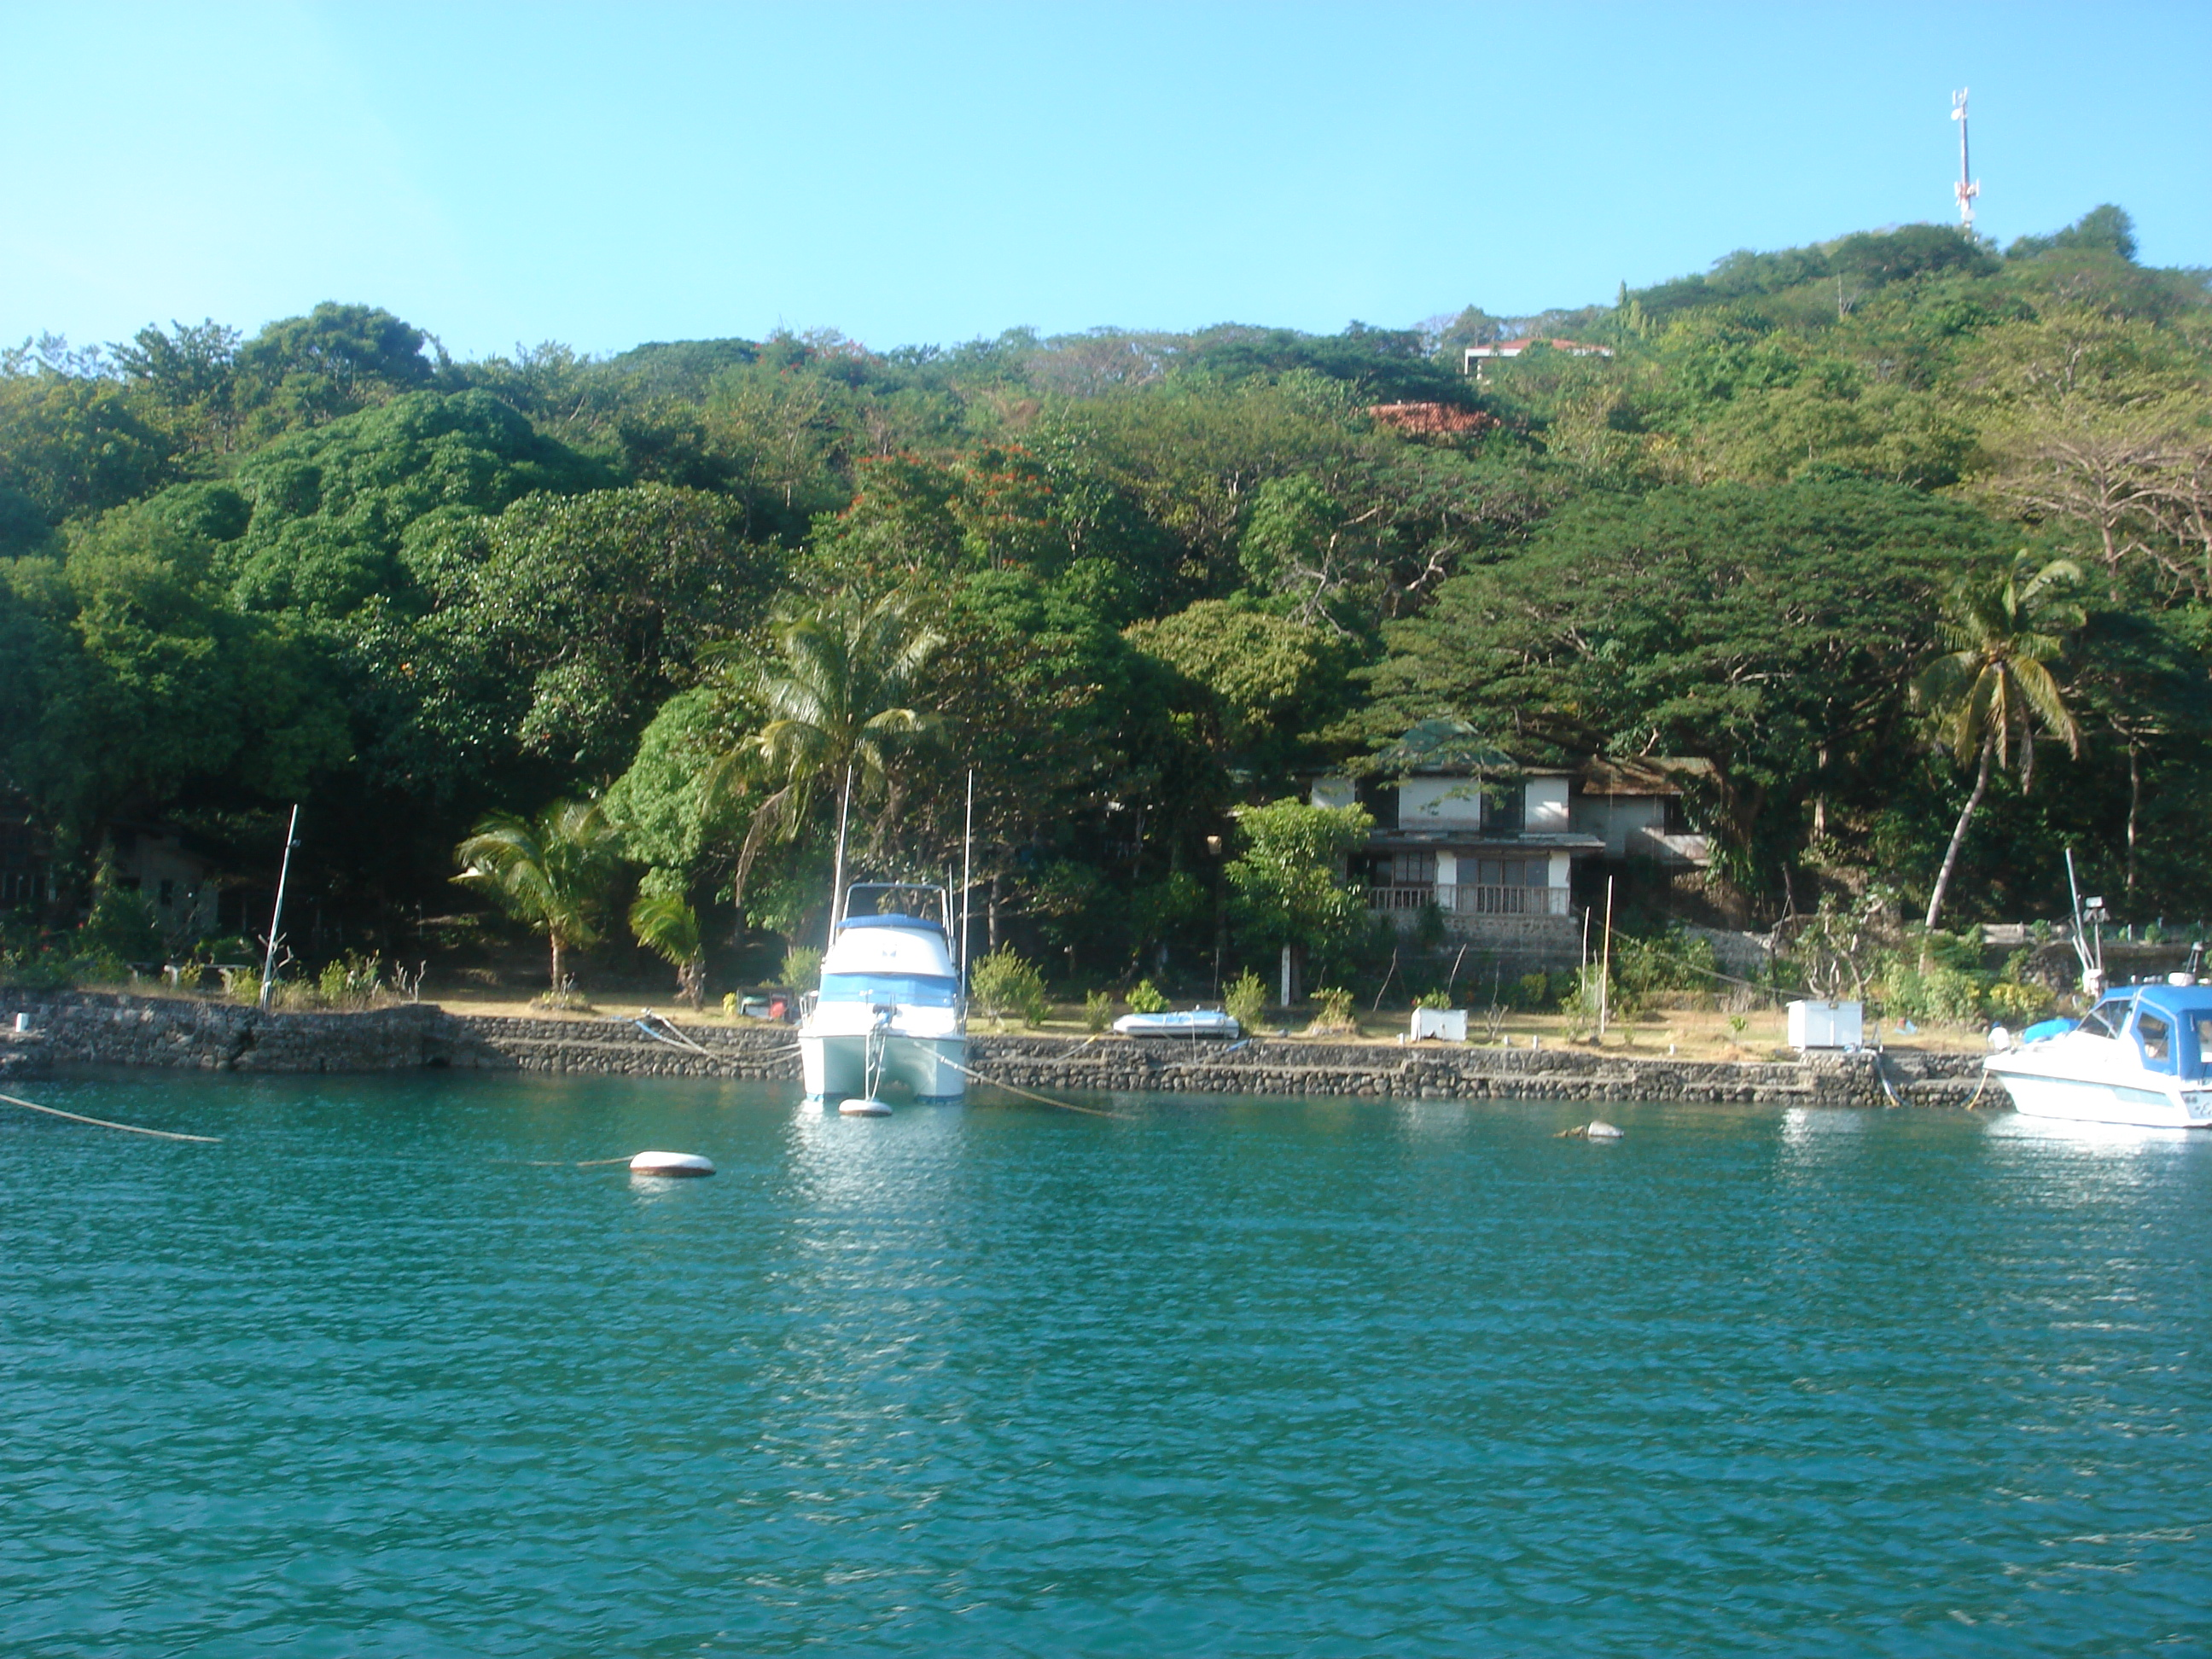 The Maya Maya Yacht Club (MMYC)